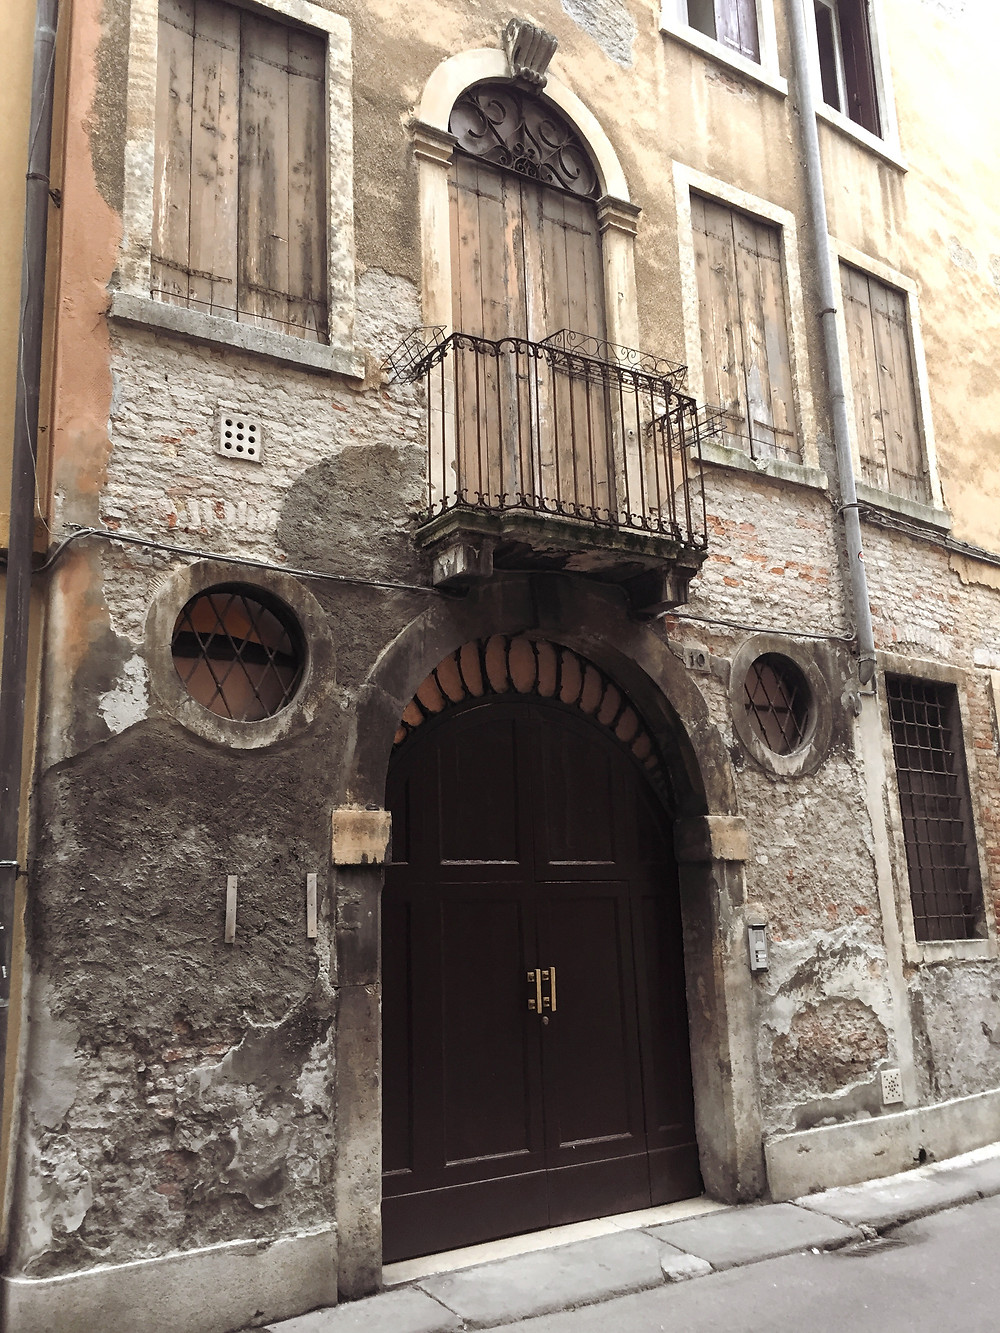 The stone facade of an old building in Vicenza, with a large wooden door, a smaller wooden door leading to a balcony with an iron railing directly above, and rectangular windows with wooden shutters.